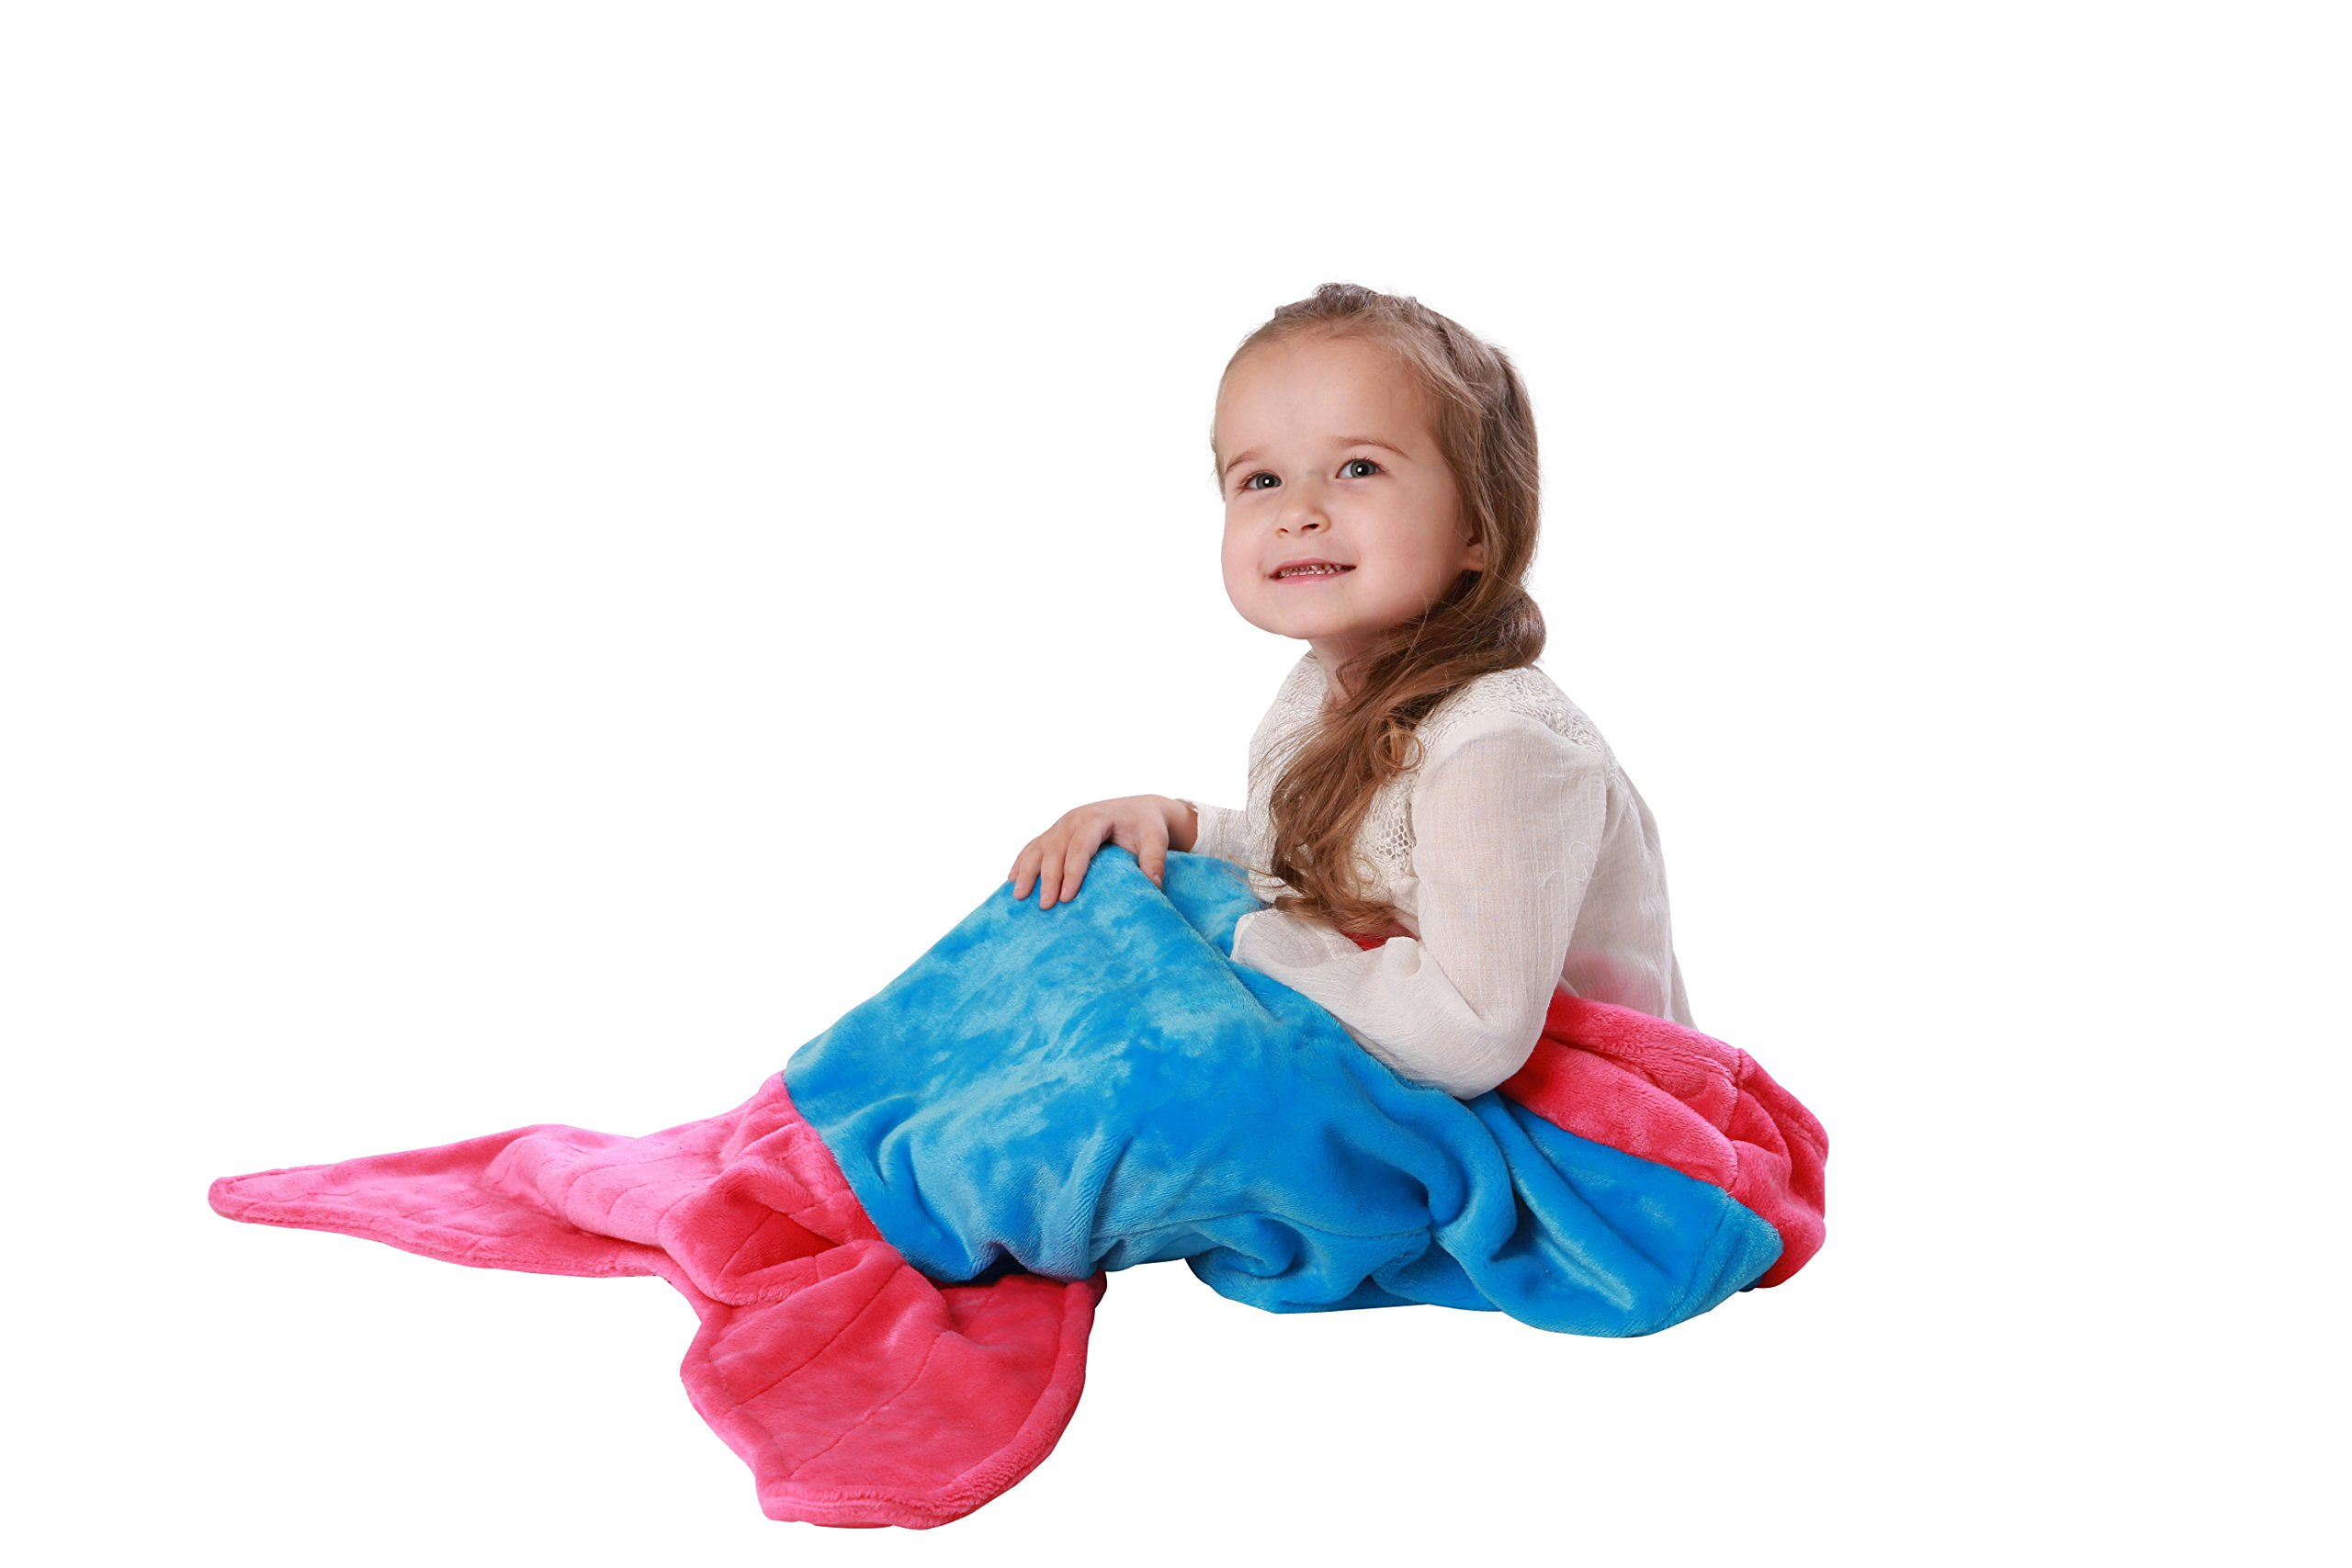 Cuddly Blankets Mermaid Tail Blanket for Toddler Girls Age 1-4 - Super Soft and Warm Minky Fabric Material Sleeping Blanket and Toy for Toddler Kids by (Ocean Blue & Hot Pink)